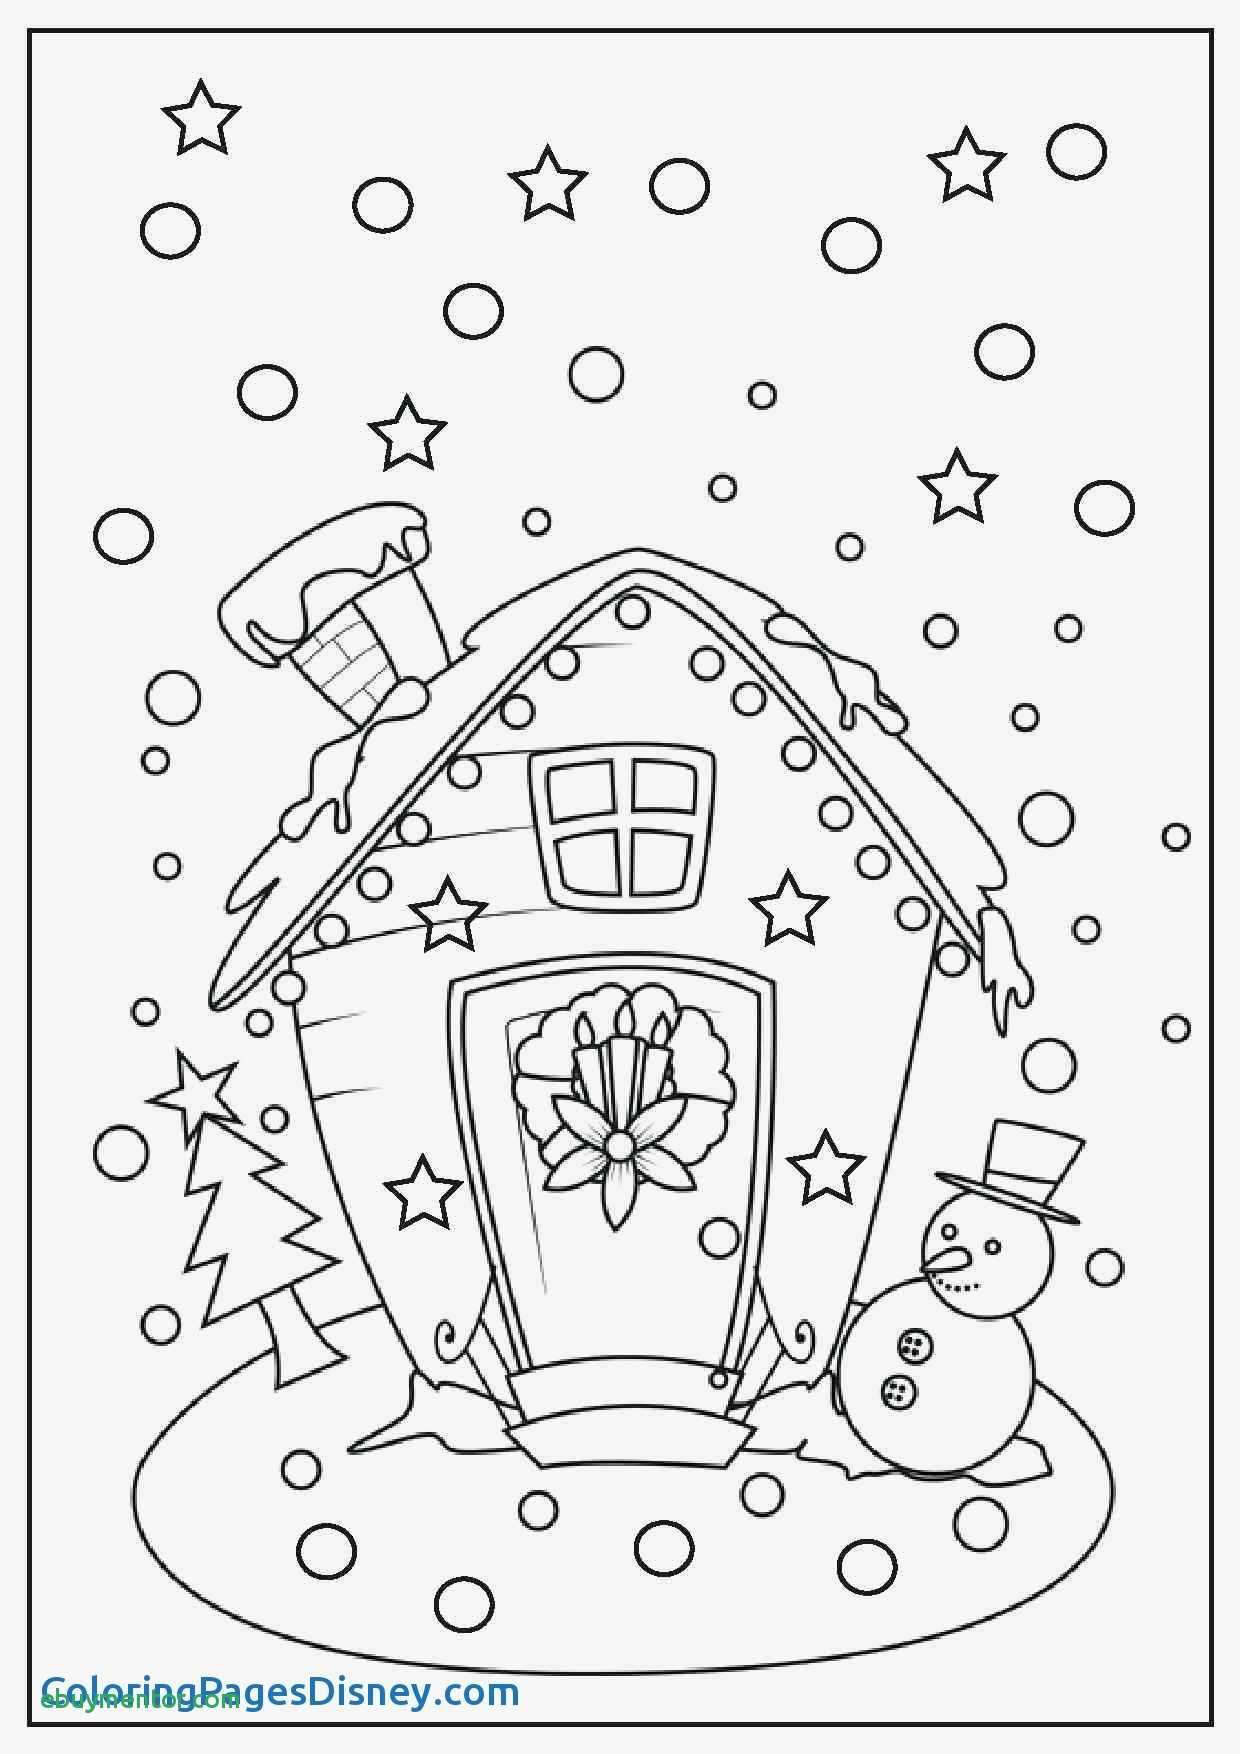 coloring pages you can print Collection-Library Mouse Coloring Page Christmas Mouse Coloring Pages Printable Cool Coloring Printables 0d 1-d